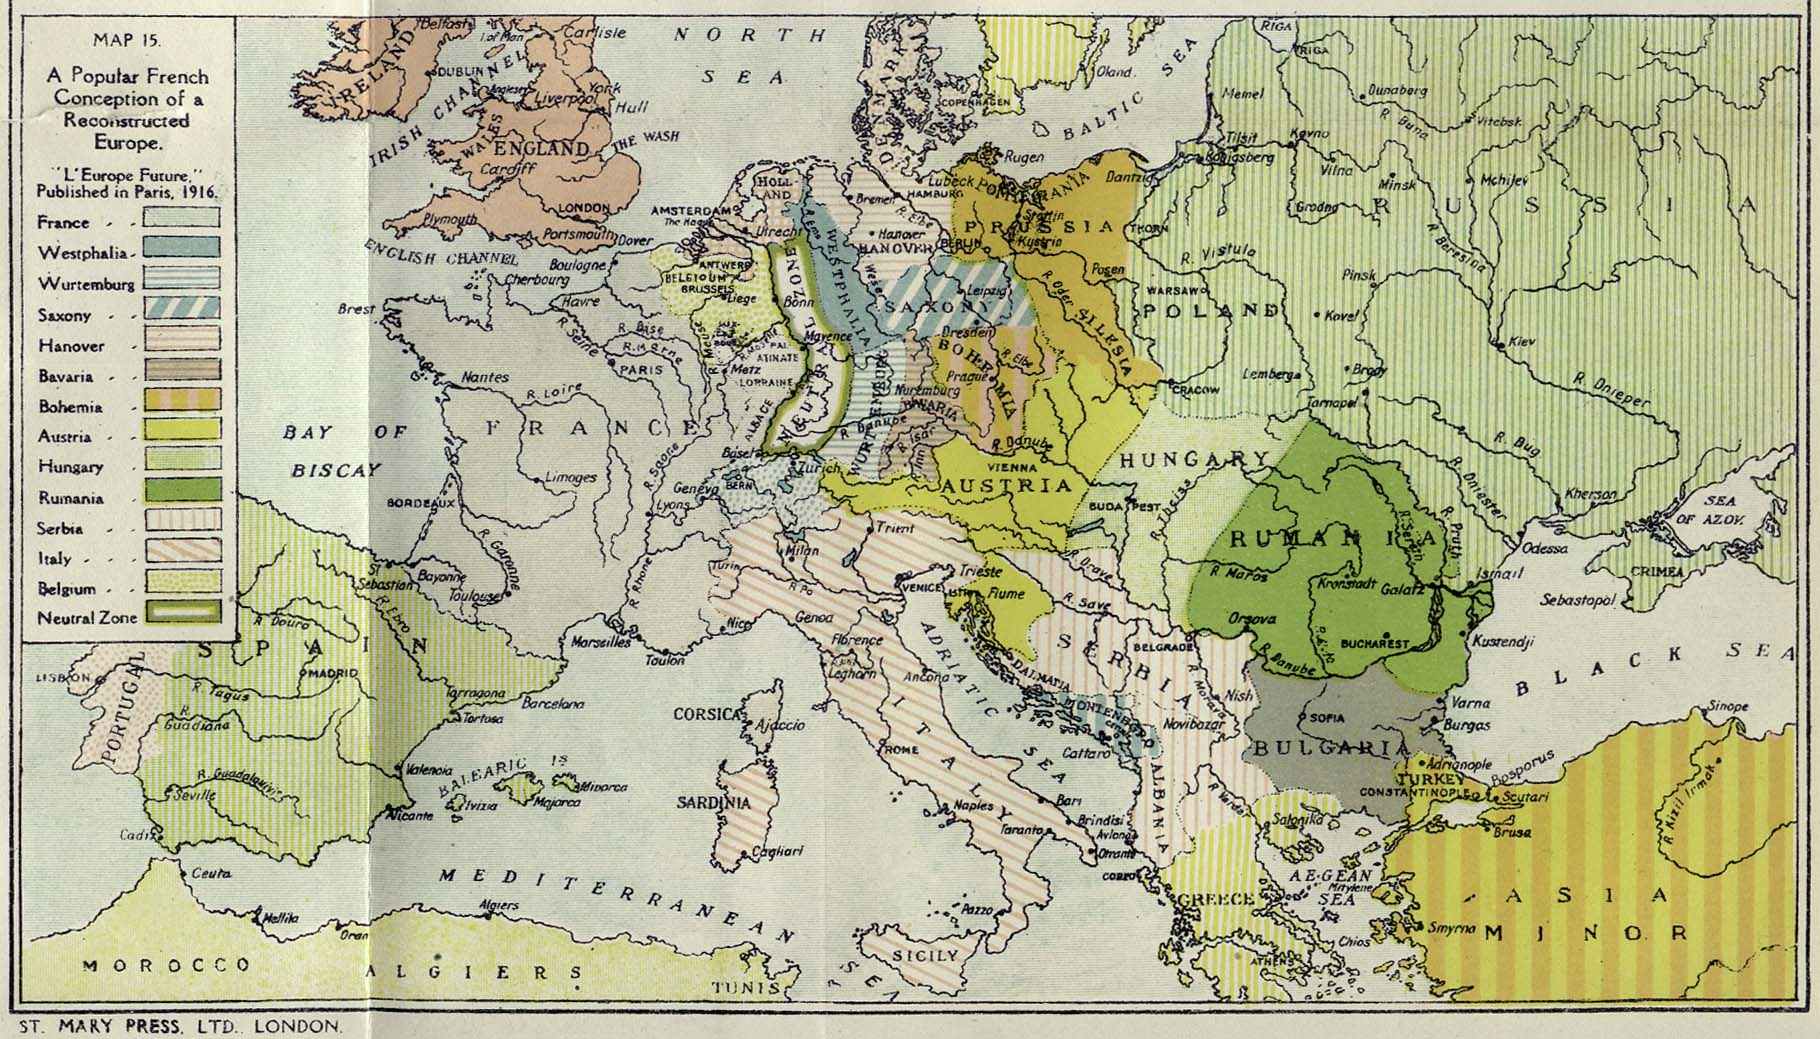 A French map of Reconstructed Europe published in 1916 World War